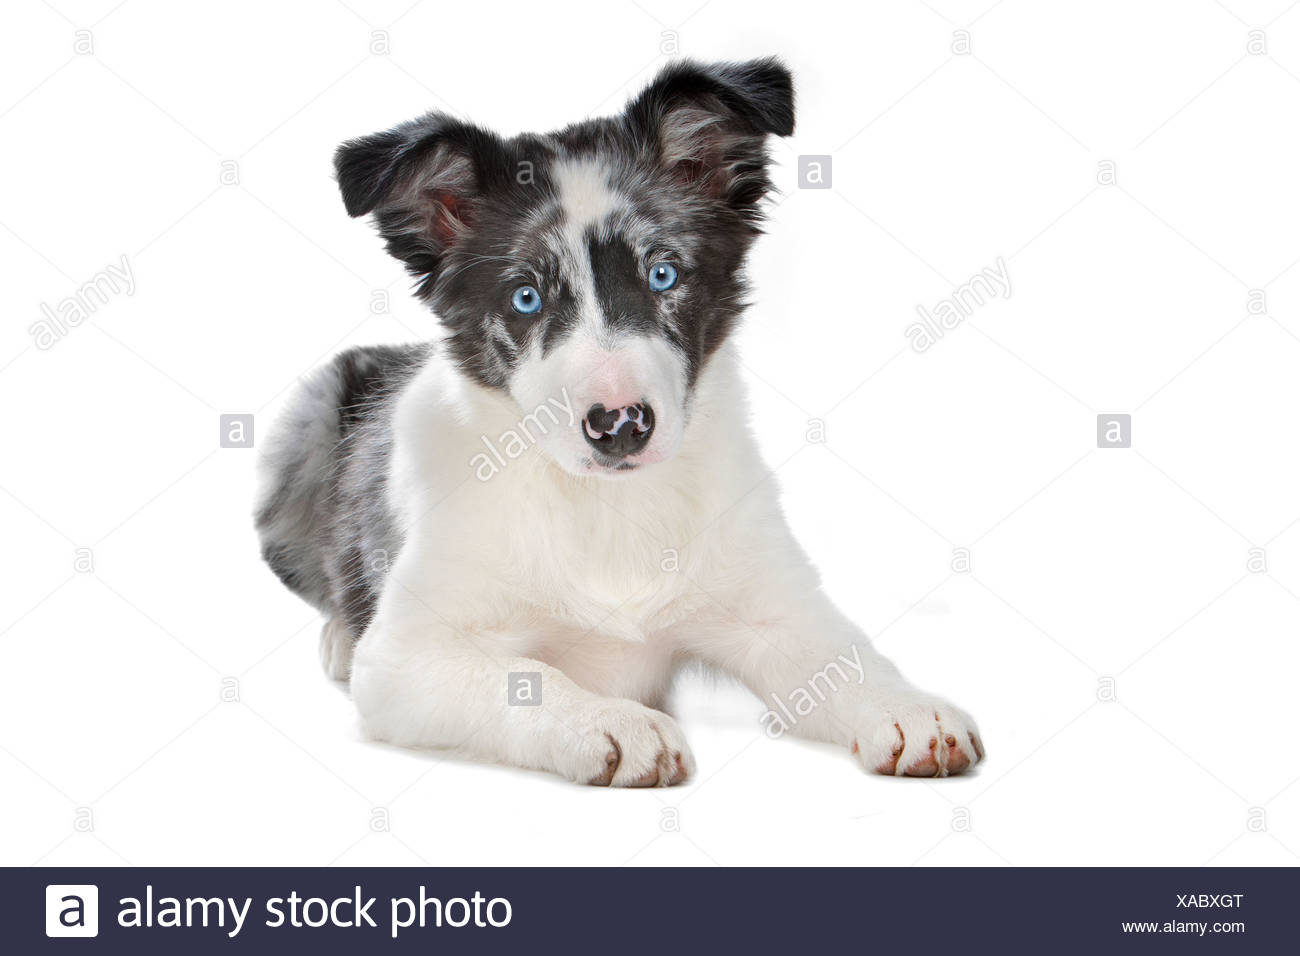 Blue Merle Border Collie Puppy In Front Of A White Background Stock Photo Alamy